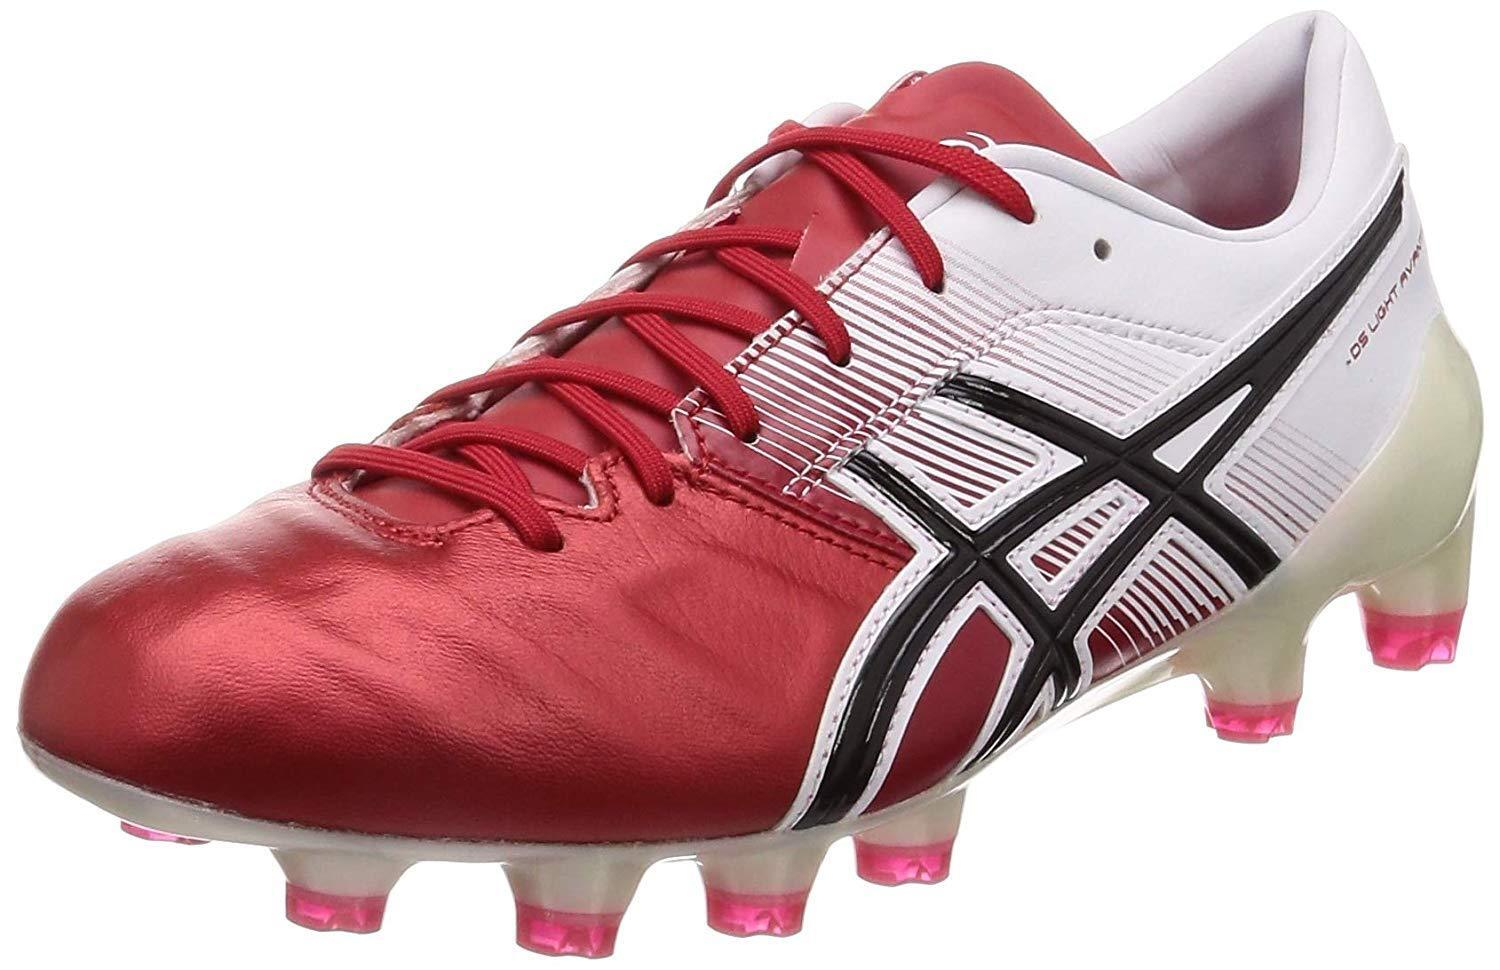 ASICS Football Soccer Spike schuhe DS LIGHT AVANTE 1101A009 rot US6(24.5cm)